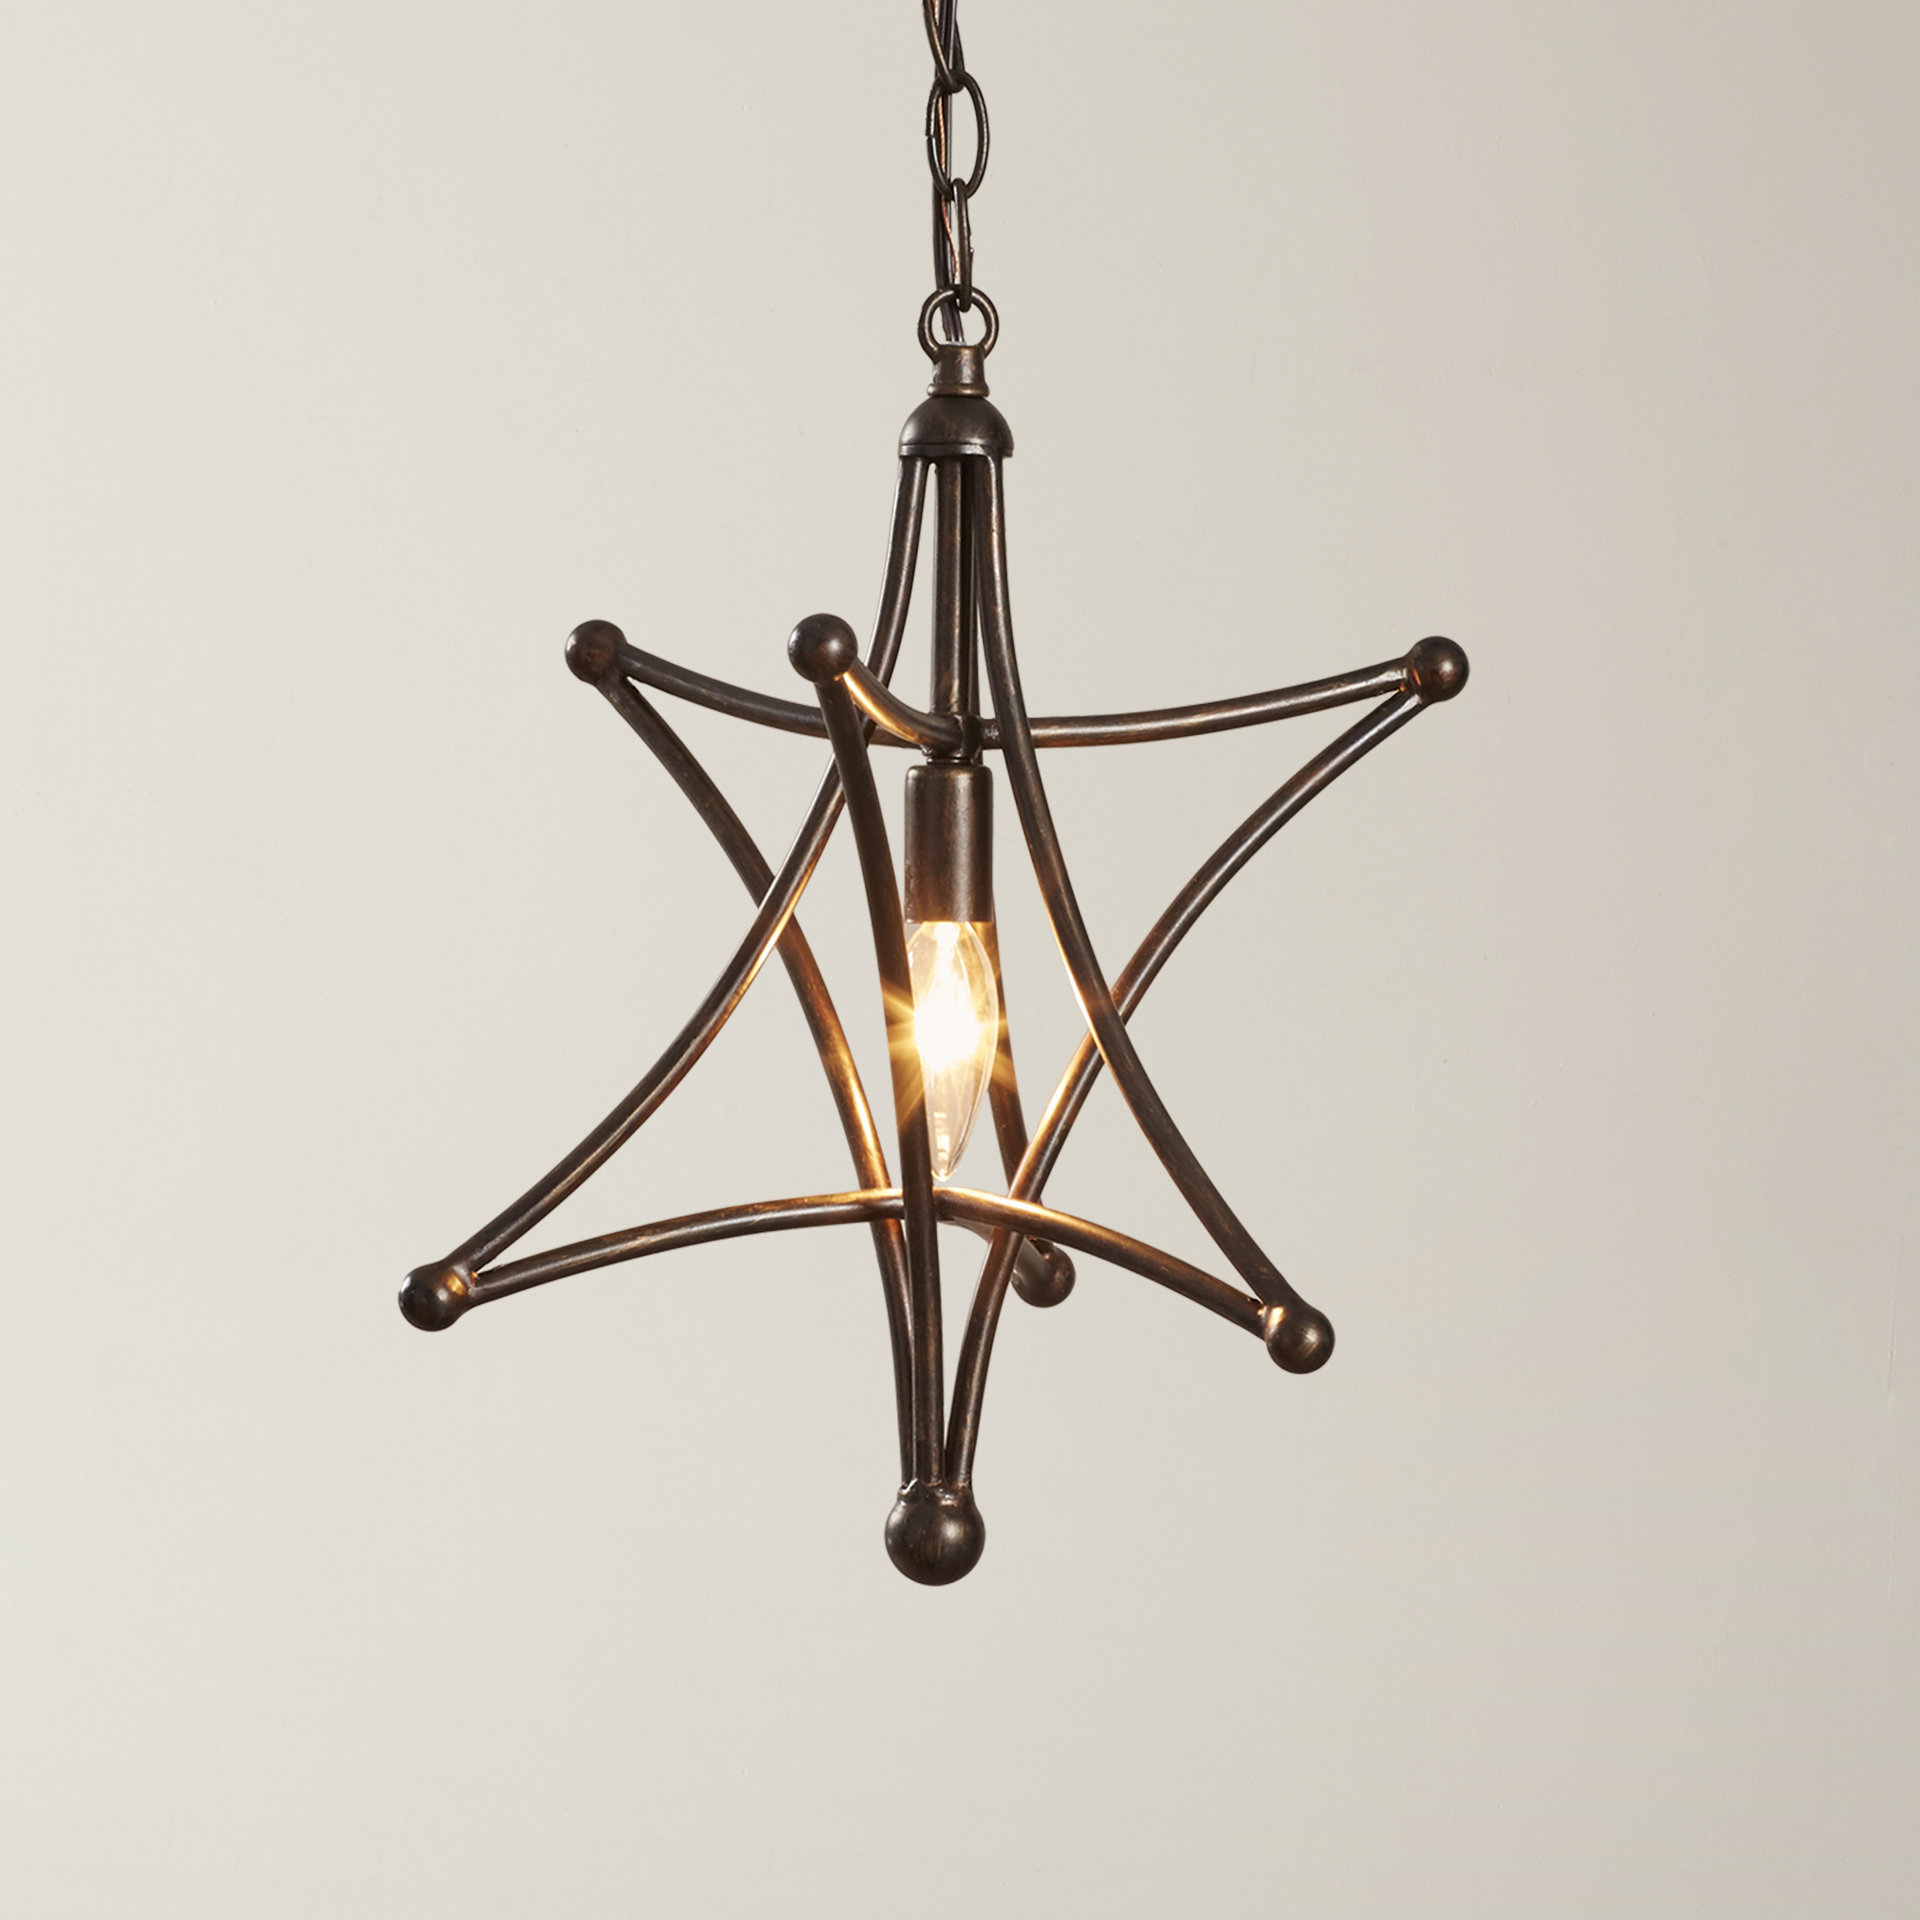 2020 Cynthia 1 Light Single Star Pendant For 1 Light Single Star Pendants (View 13 of 20)